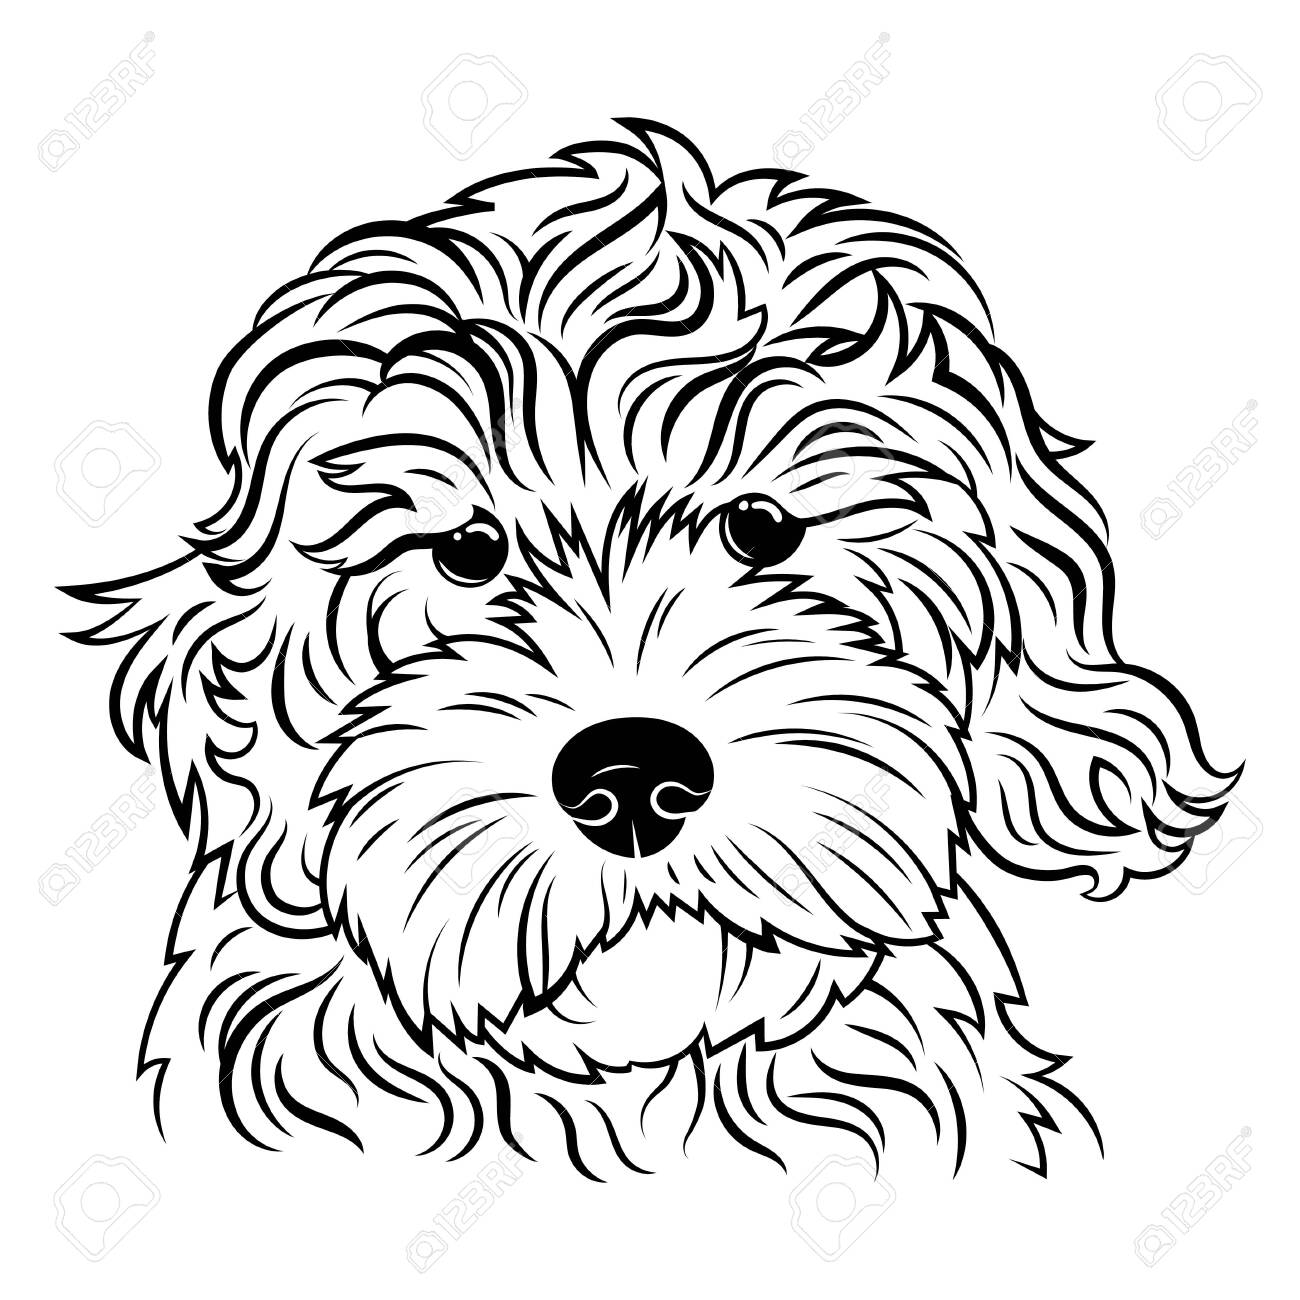 Portrait Of A Dog Portrait Of The Breed Golden Doodle Black Royalty Free Cliparts Vectors And Stock Illustration Image 129542907